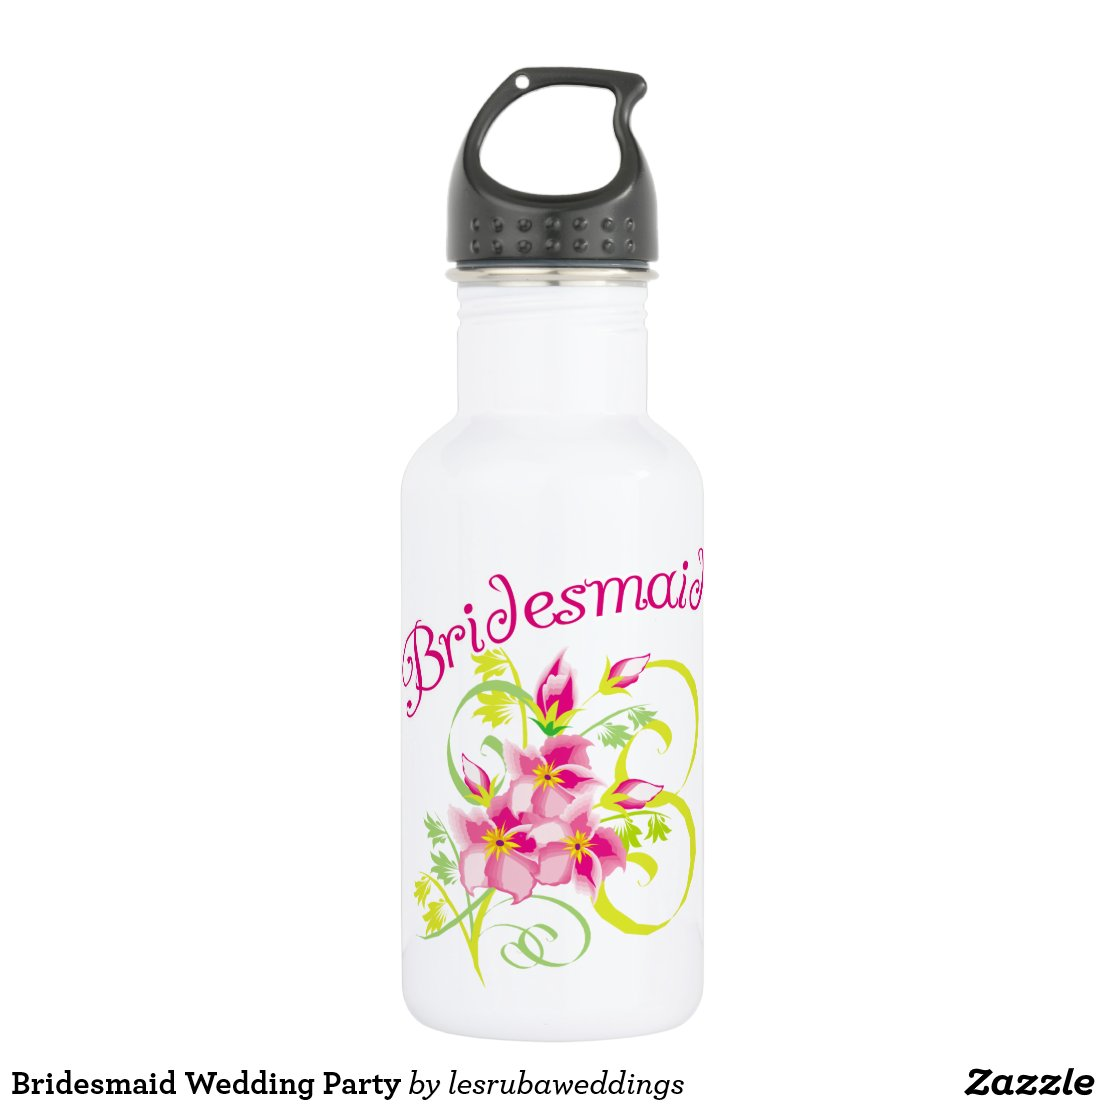 Bridesmaid Wedding Party